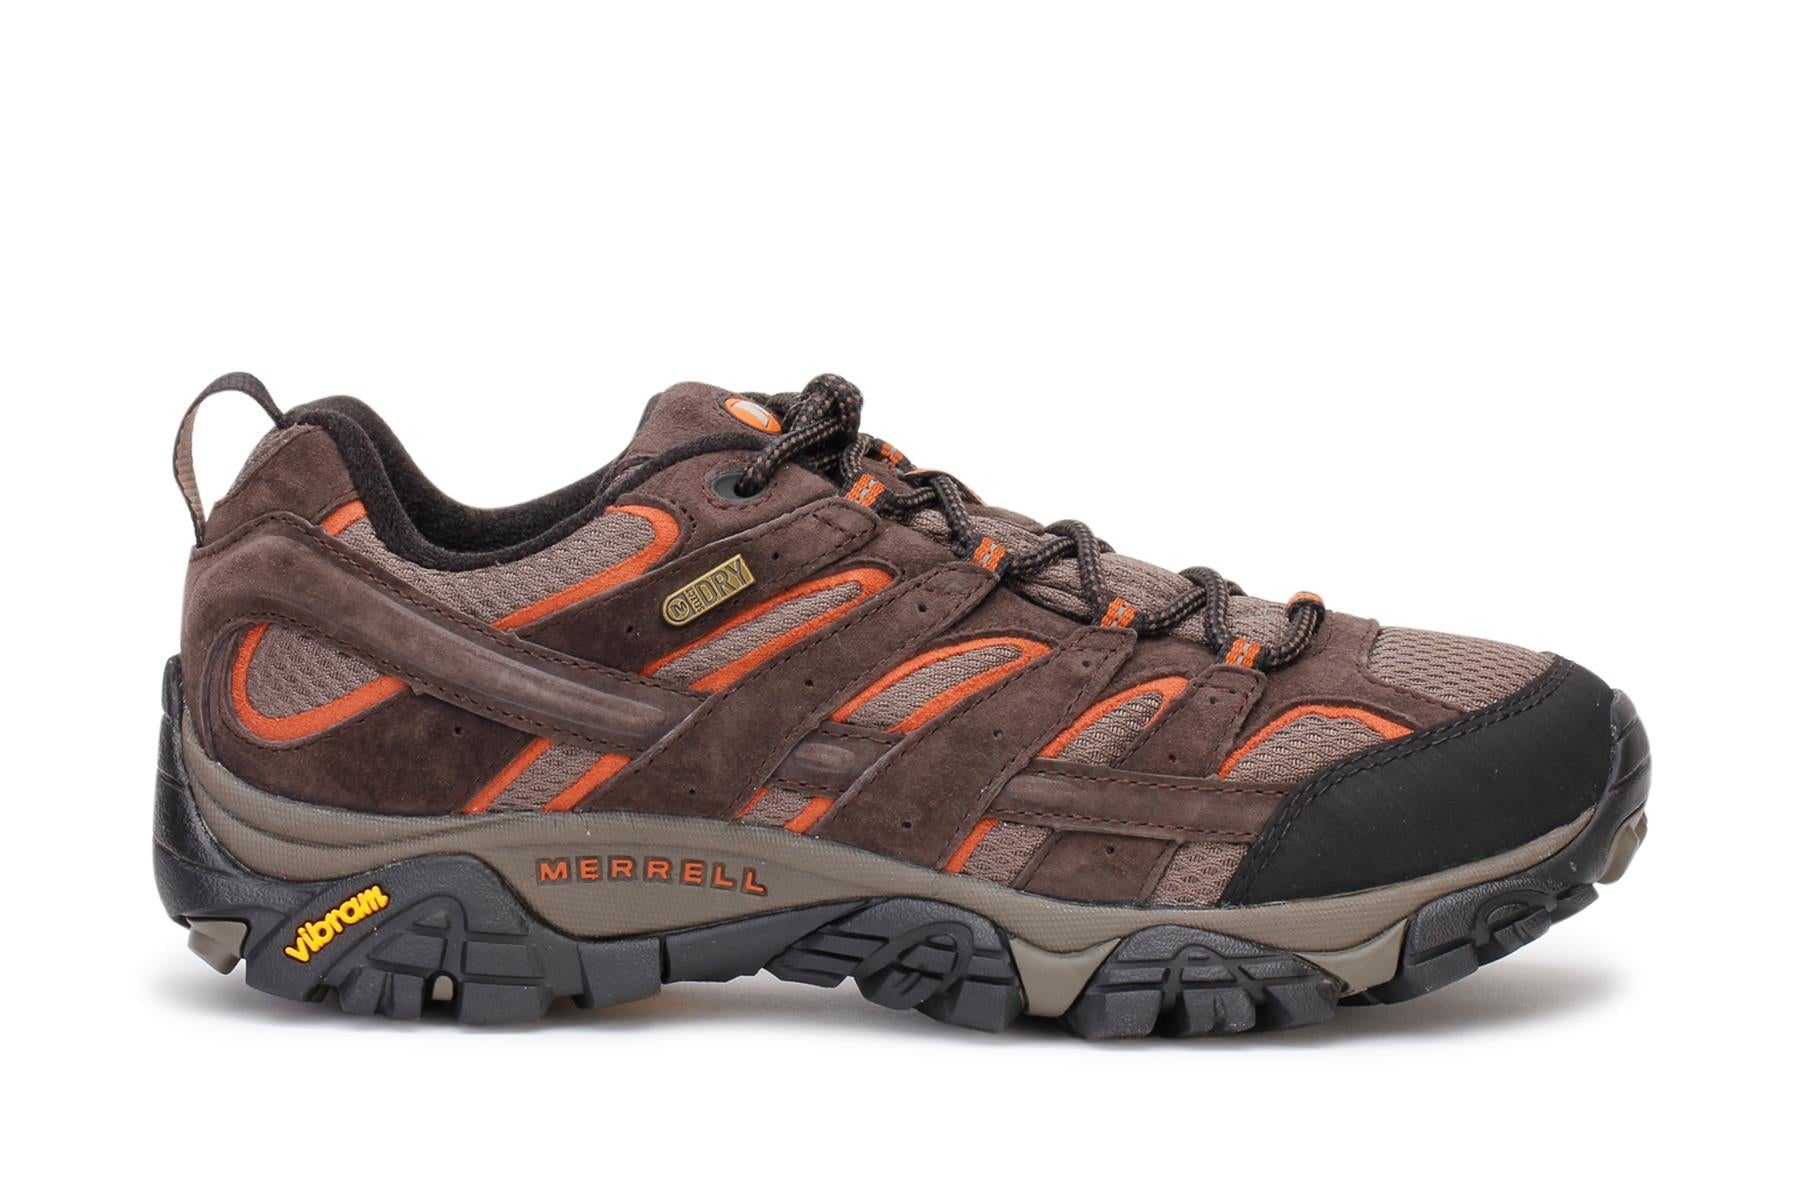 Merrell Mens Shoes Moab 2 Waterproof Espresso J06027